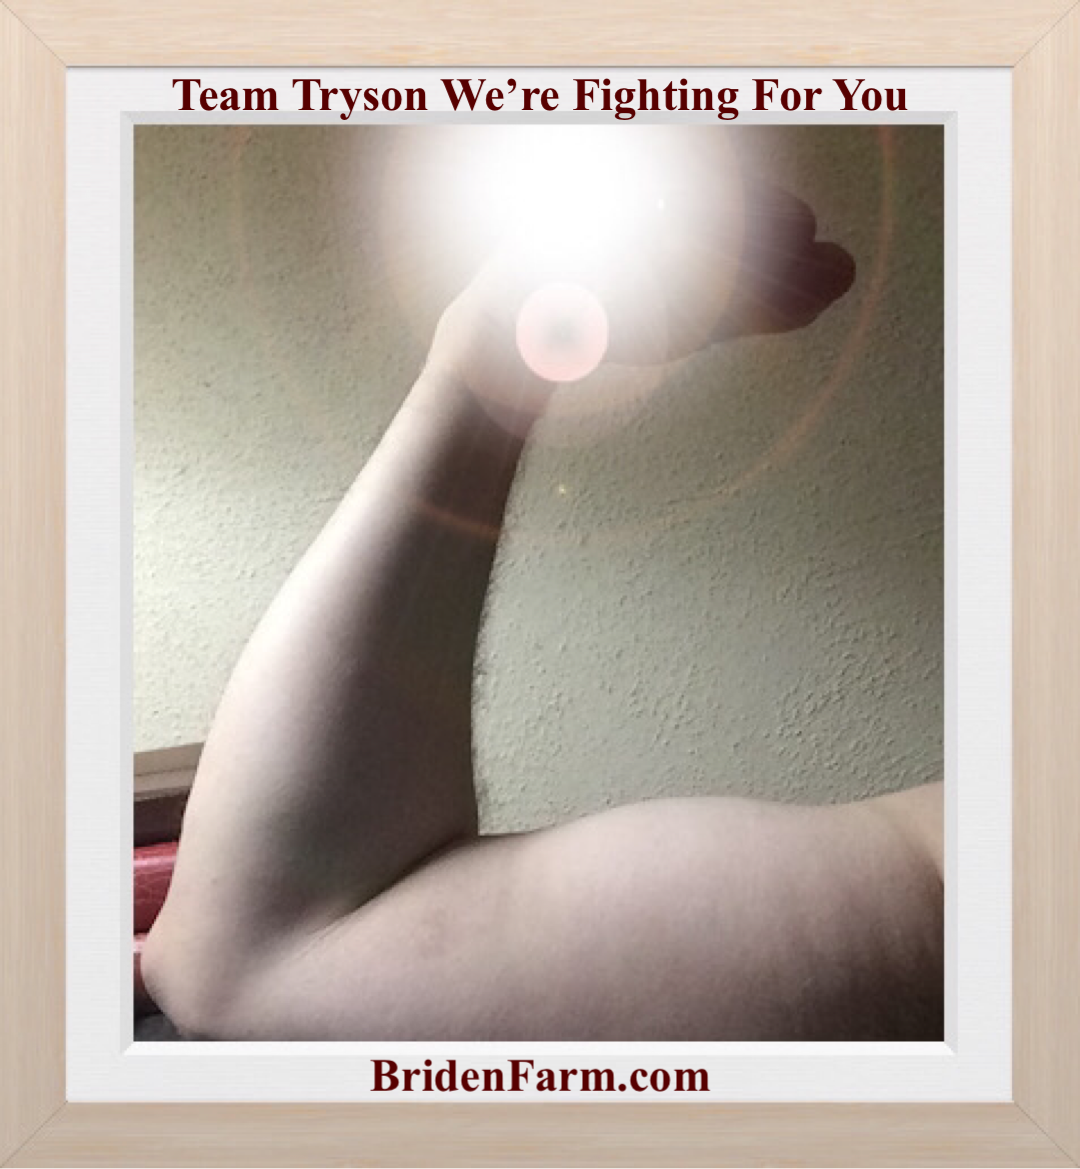 Team Tryson We're Fighting For You